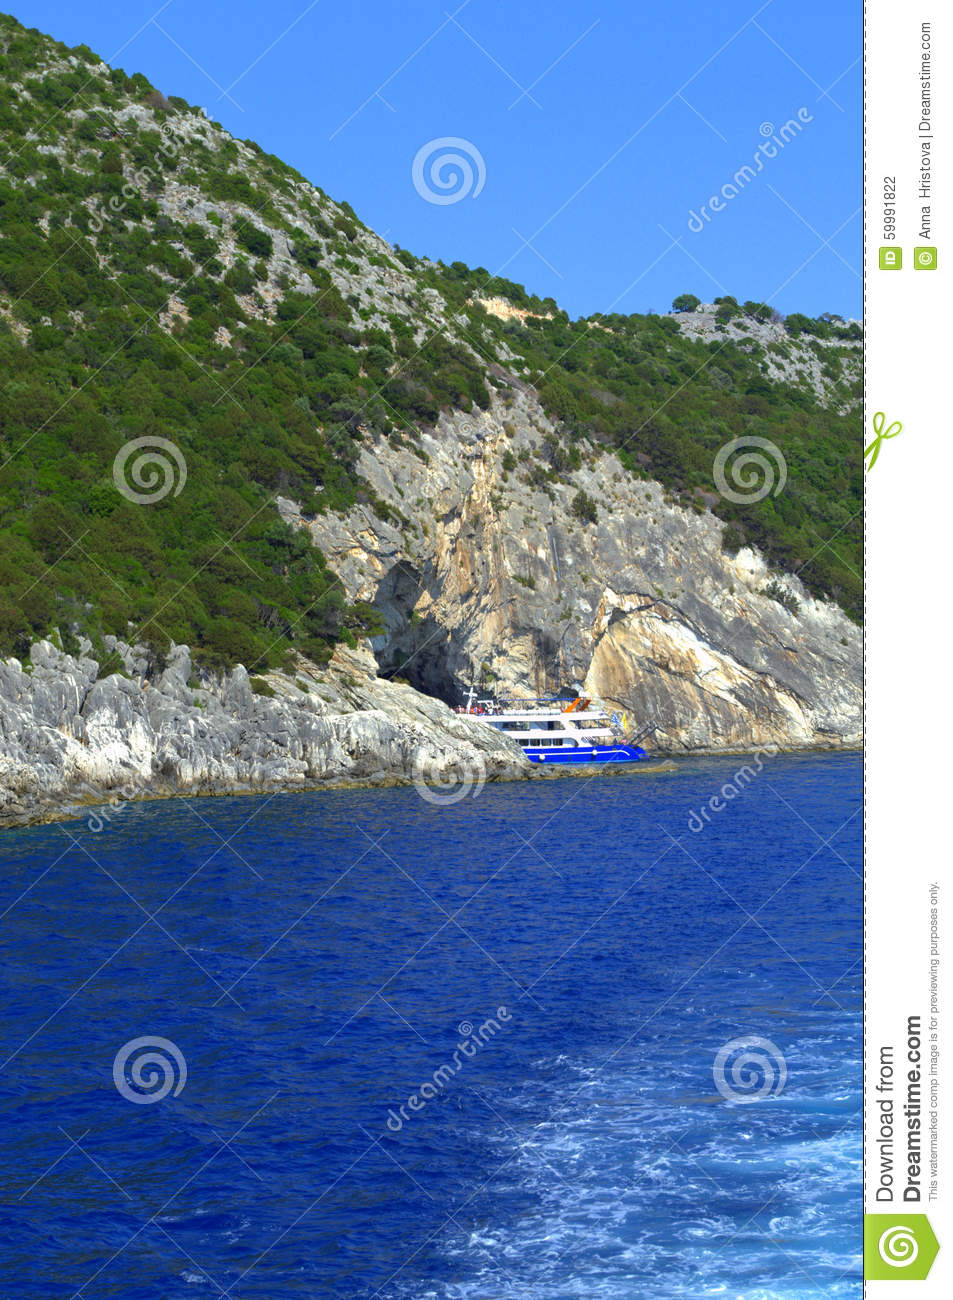 cruise boat in papanikolis sea cave stock photo image cafe clipart images cave clipart black and white